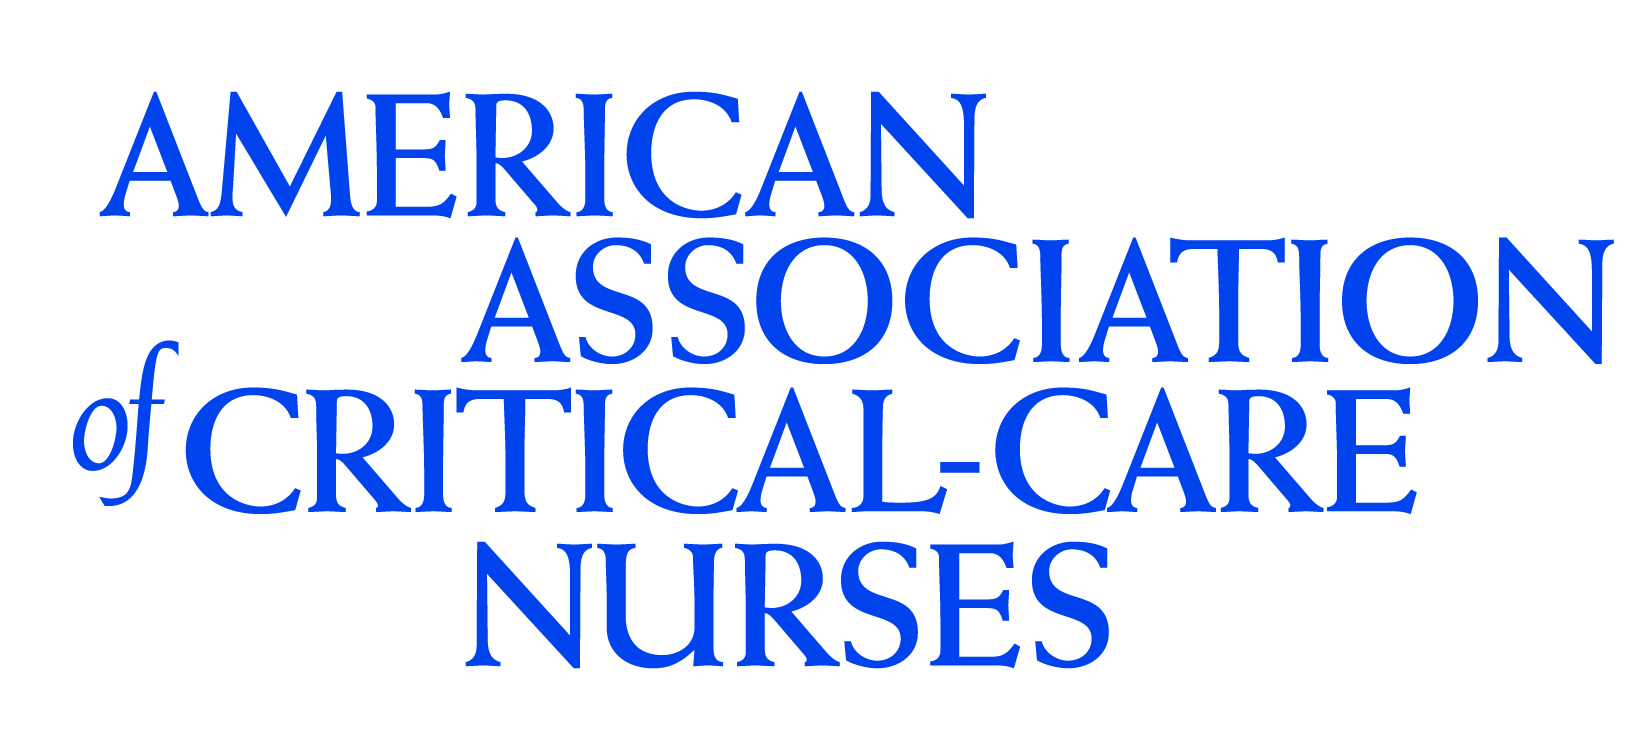 nursing and american nurses association Welcome the nursing alliance for quality care (naqc) has been managed by the american nurses association (ana) since april 2013 previously the naqc was housed at the george washington university school of nursing since its inception.